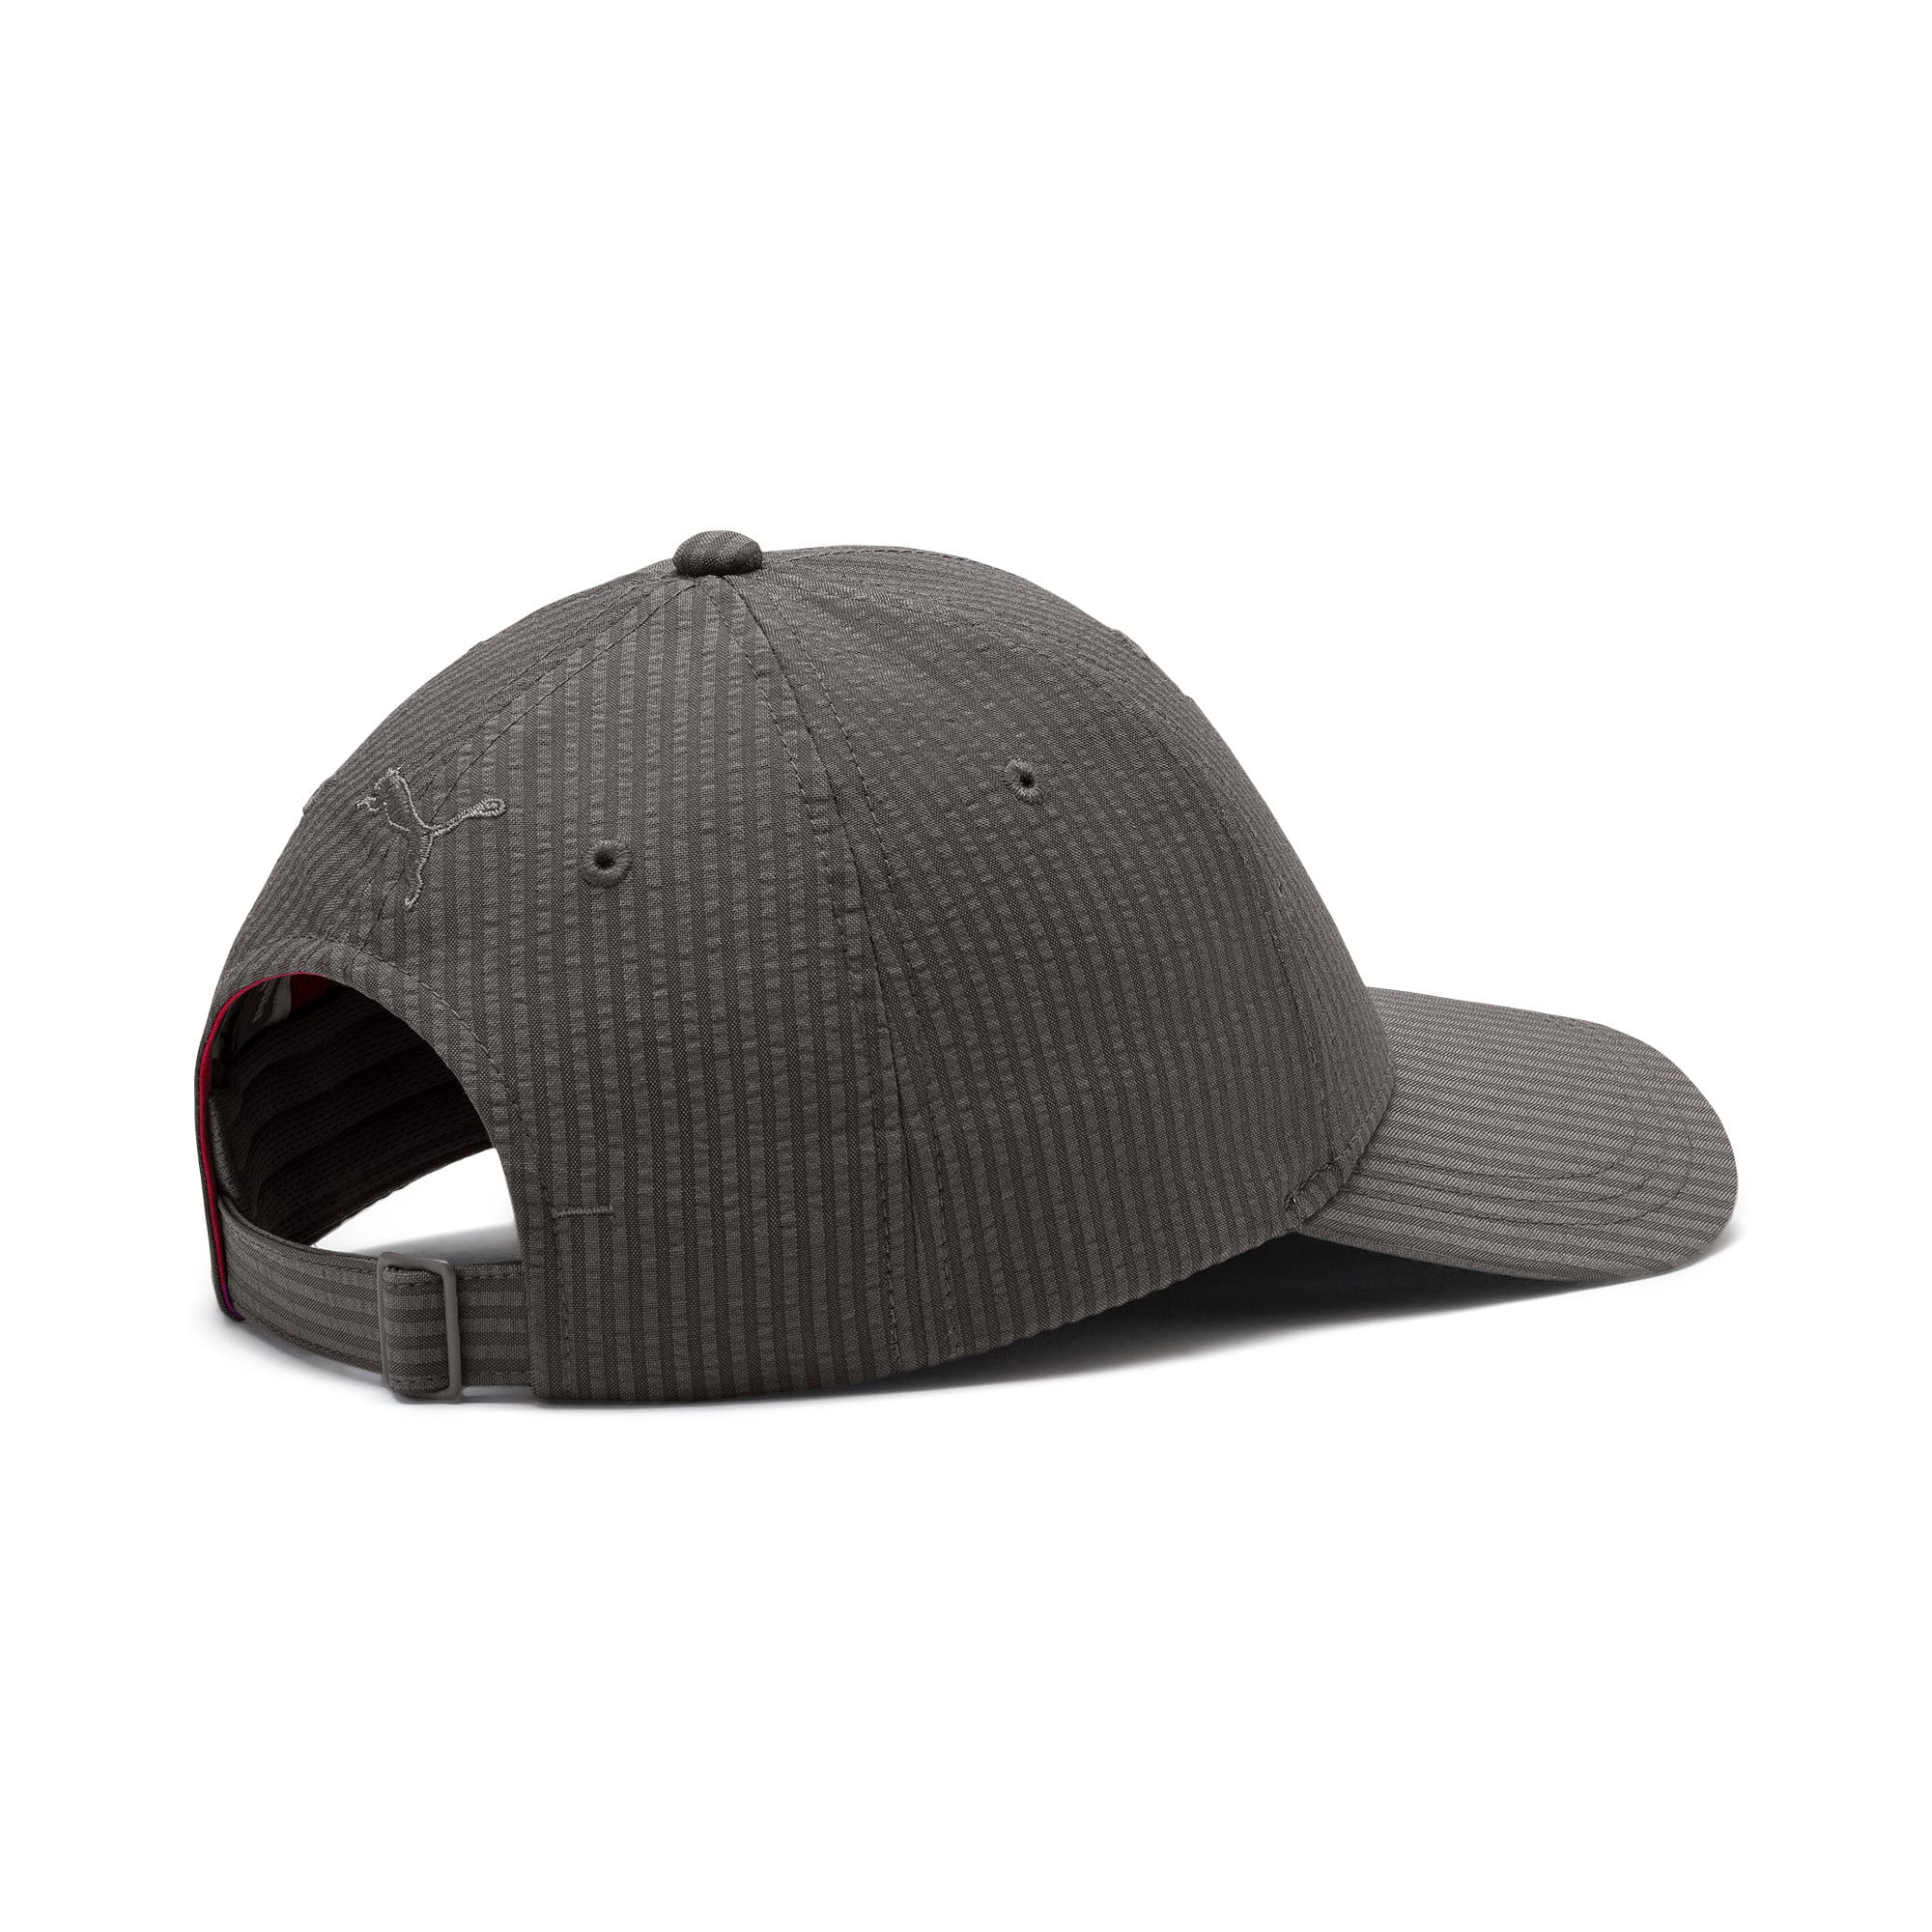 Ferrari Lifestyle Baseball Cap, Charcoal Gray, large-IND